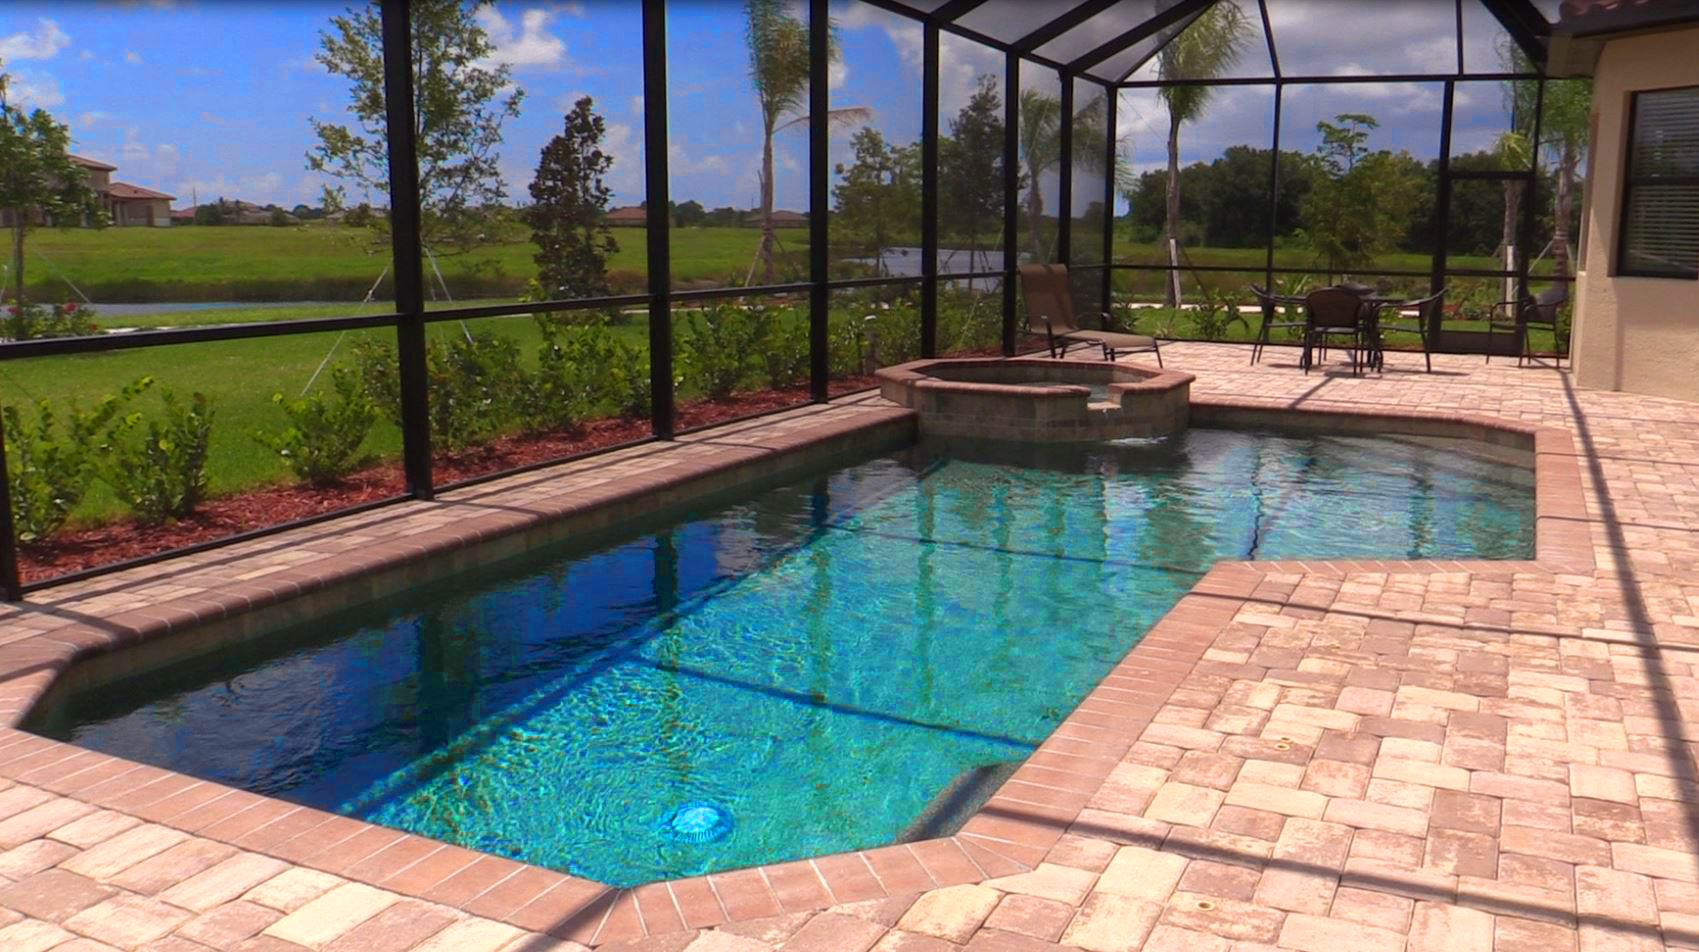 Gran Paradiso Venice Florida Real Estate For Sale